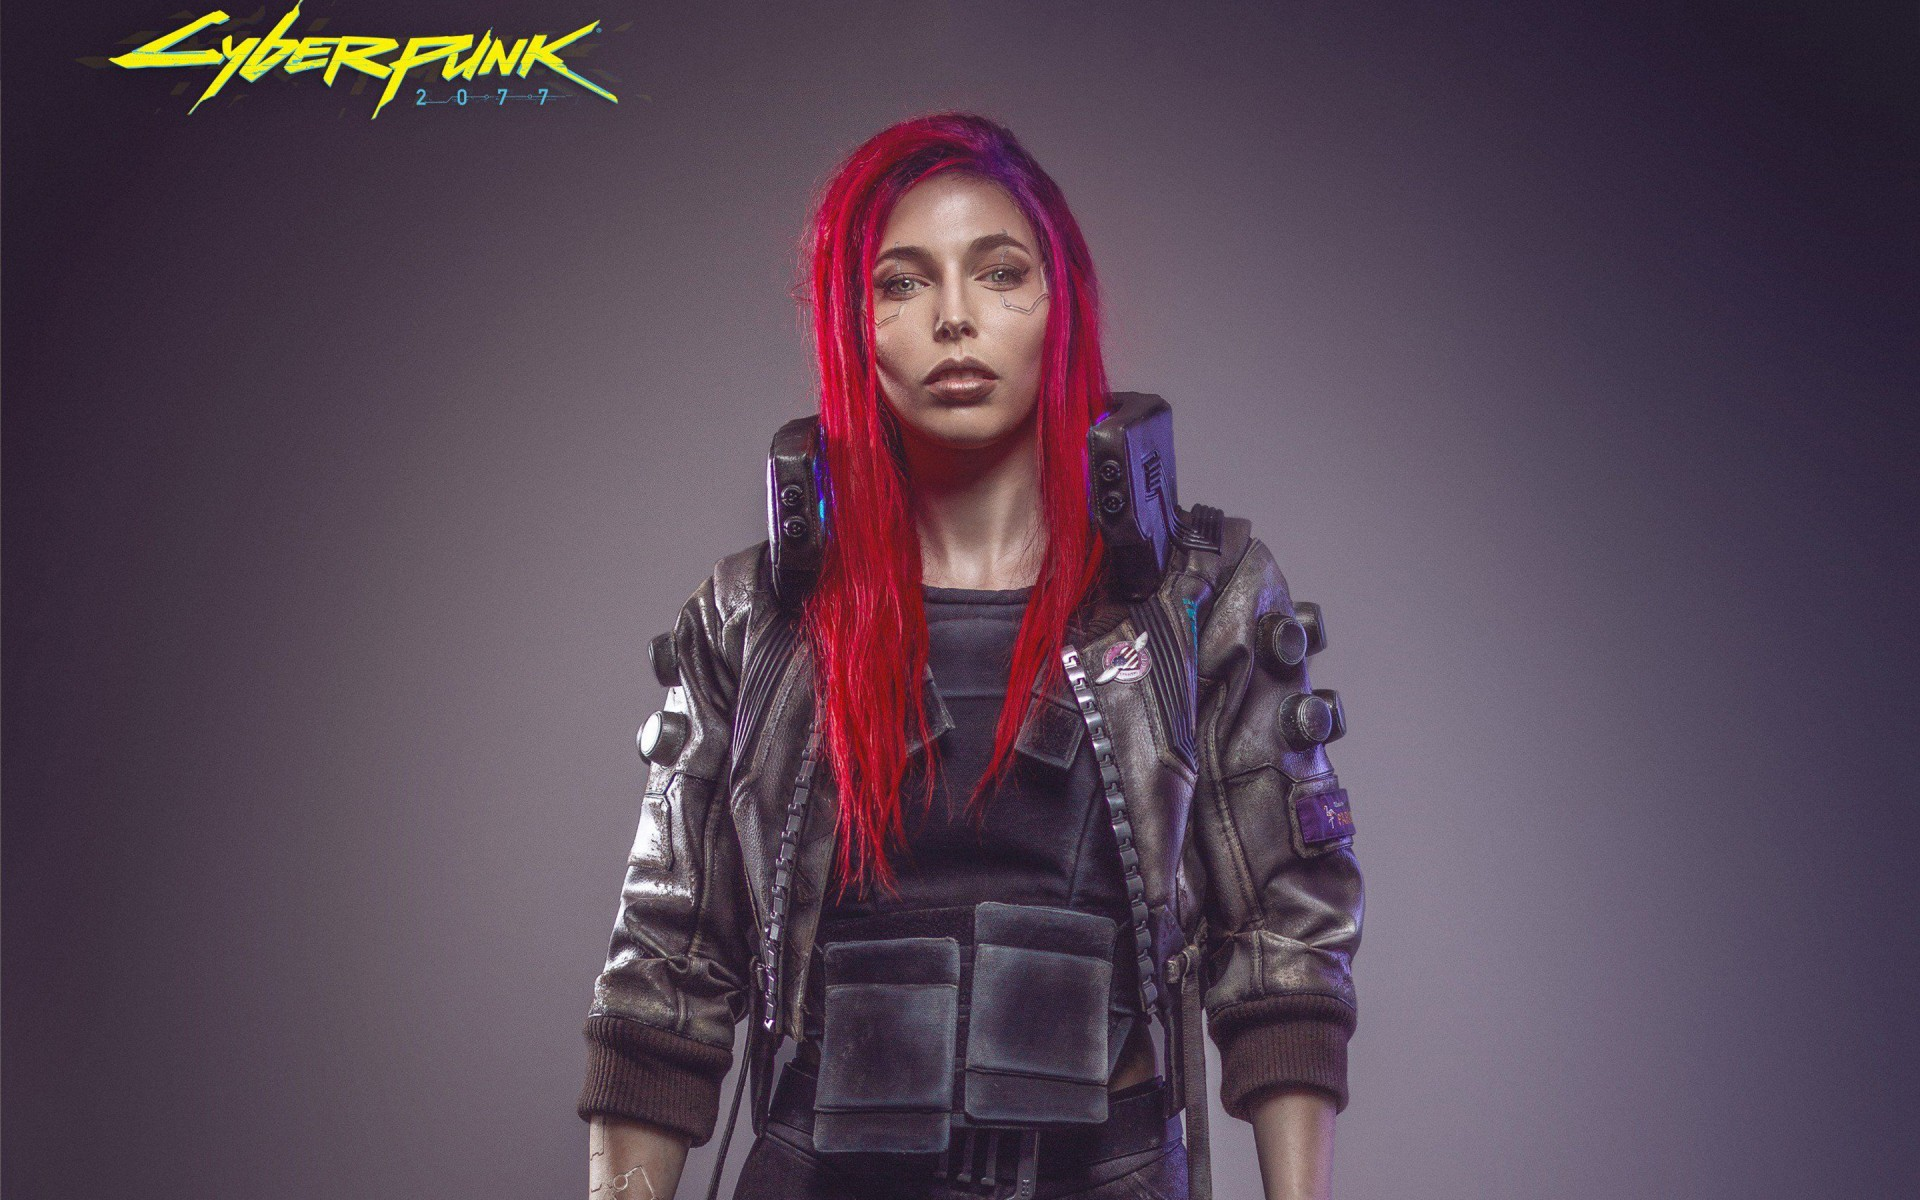 Pubg Iphone X Wallpaper Cyberpunk 2077 Female Cosplay Wallpapers Hd Wallpapers